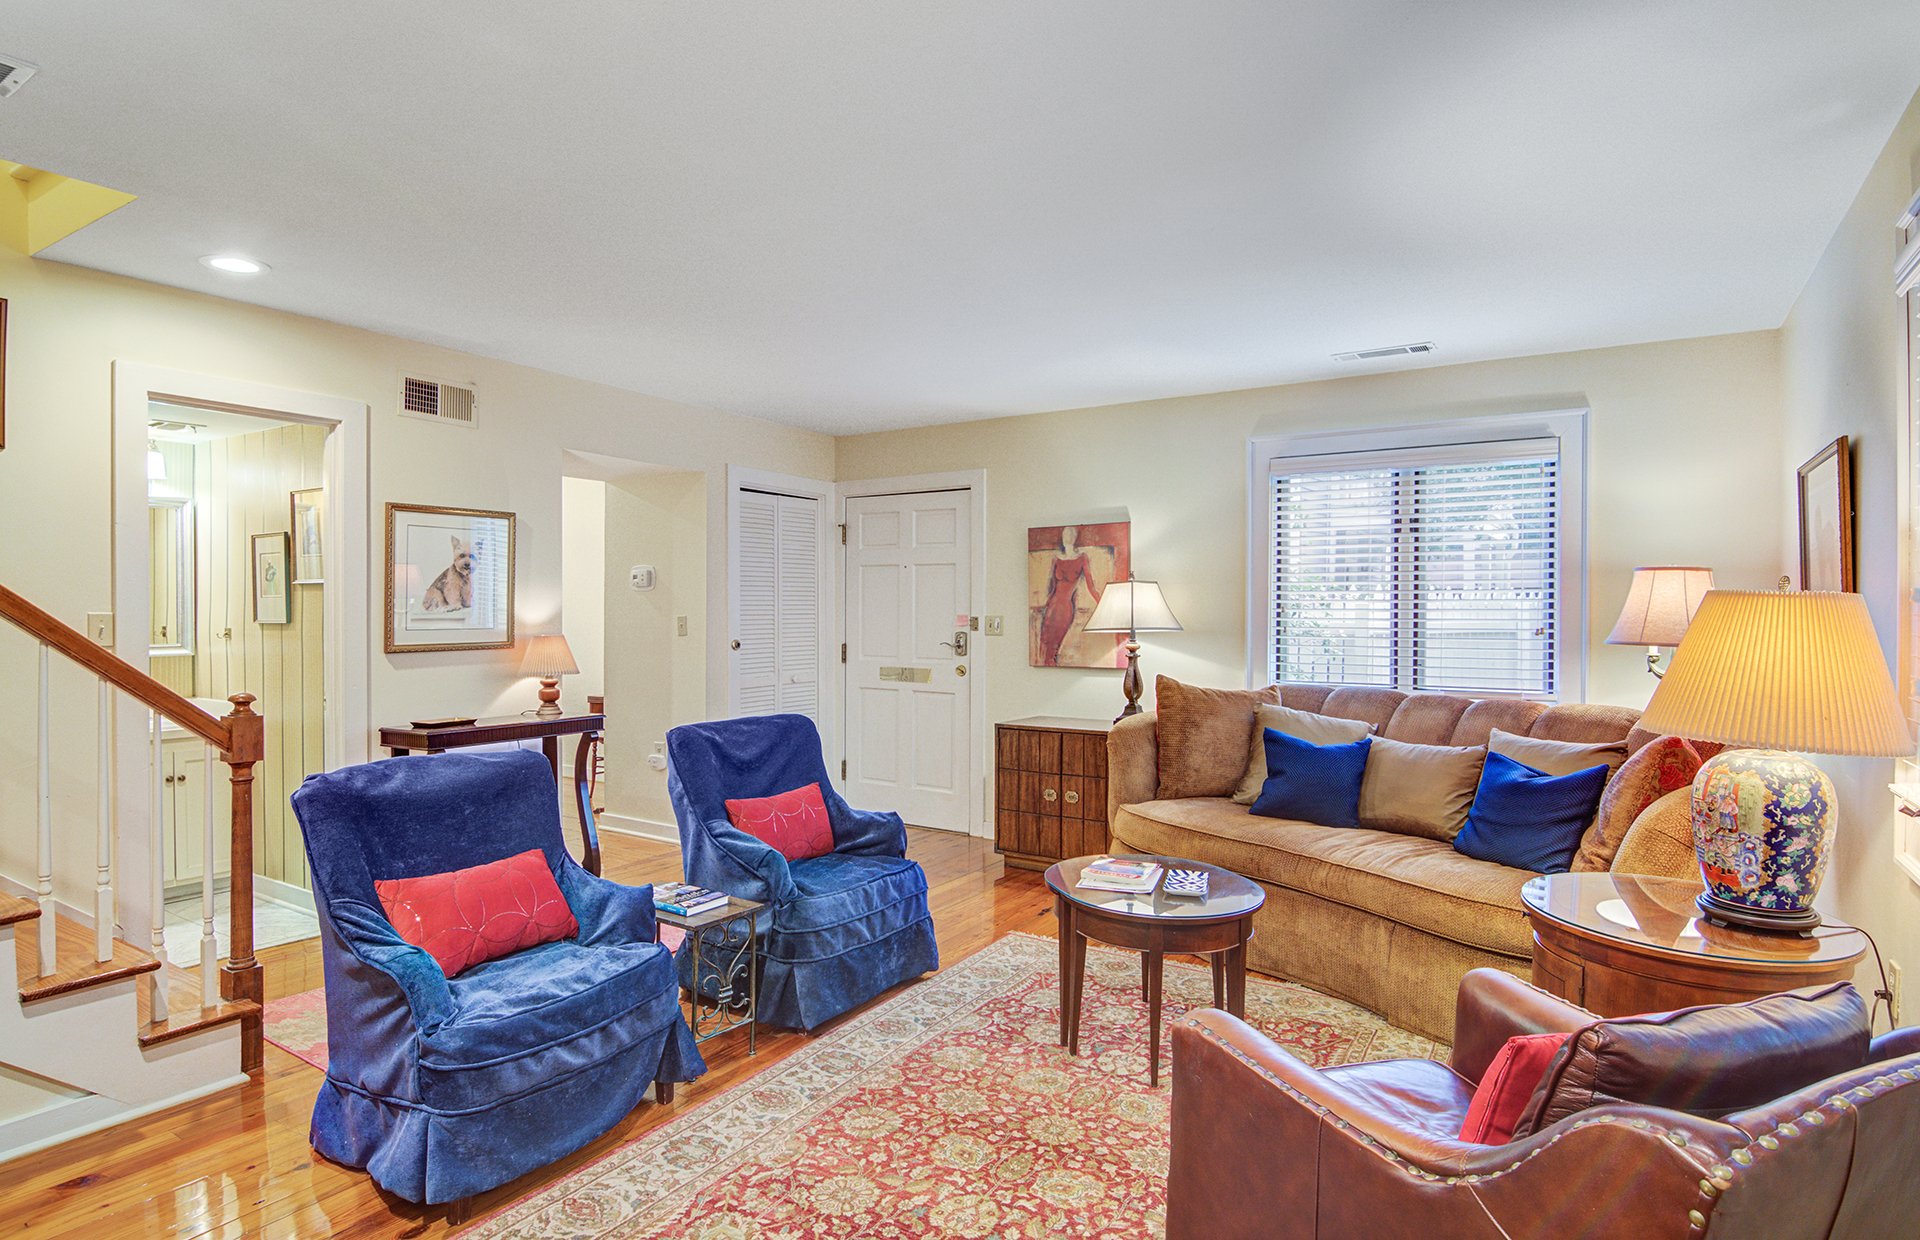 98 Q - 3 BEDROOMS - SLEEPS 6AVAILABLE ON A MONTHLY BASIS: 11/23